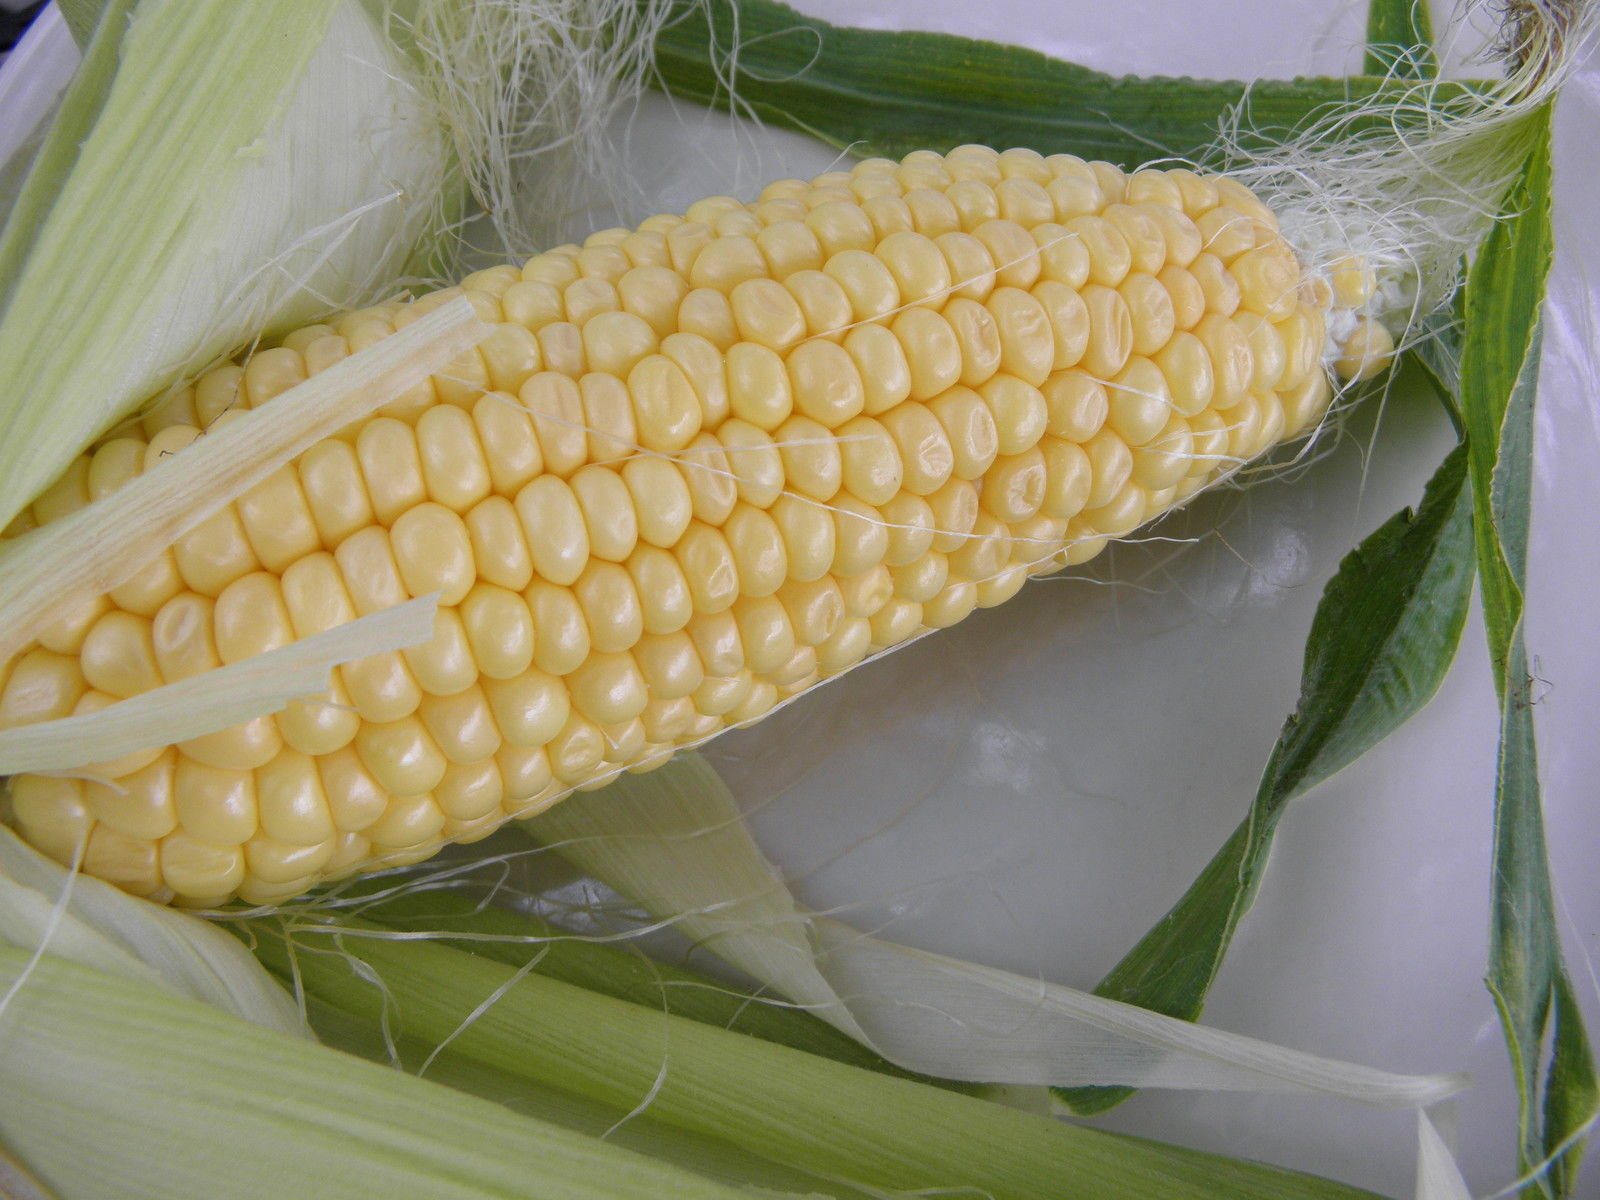 Buhl Sweet Corn - the finest and most uniform open-pollinated sweet corn